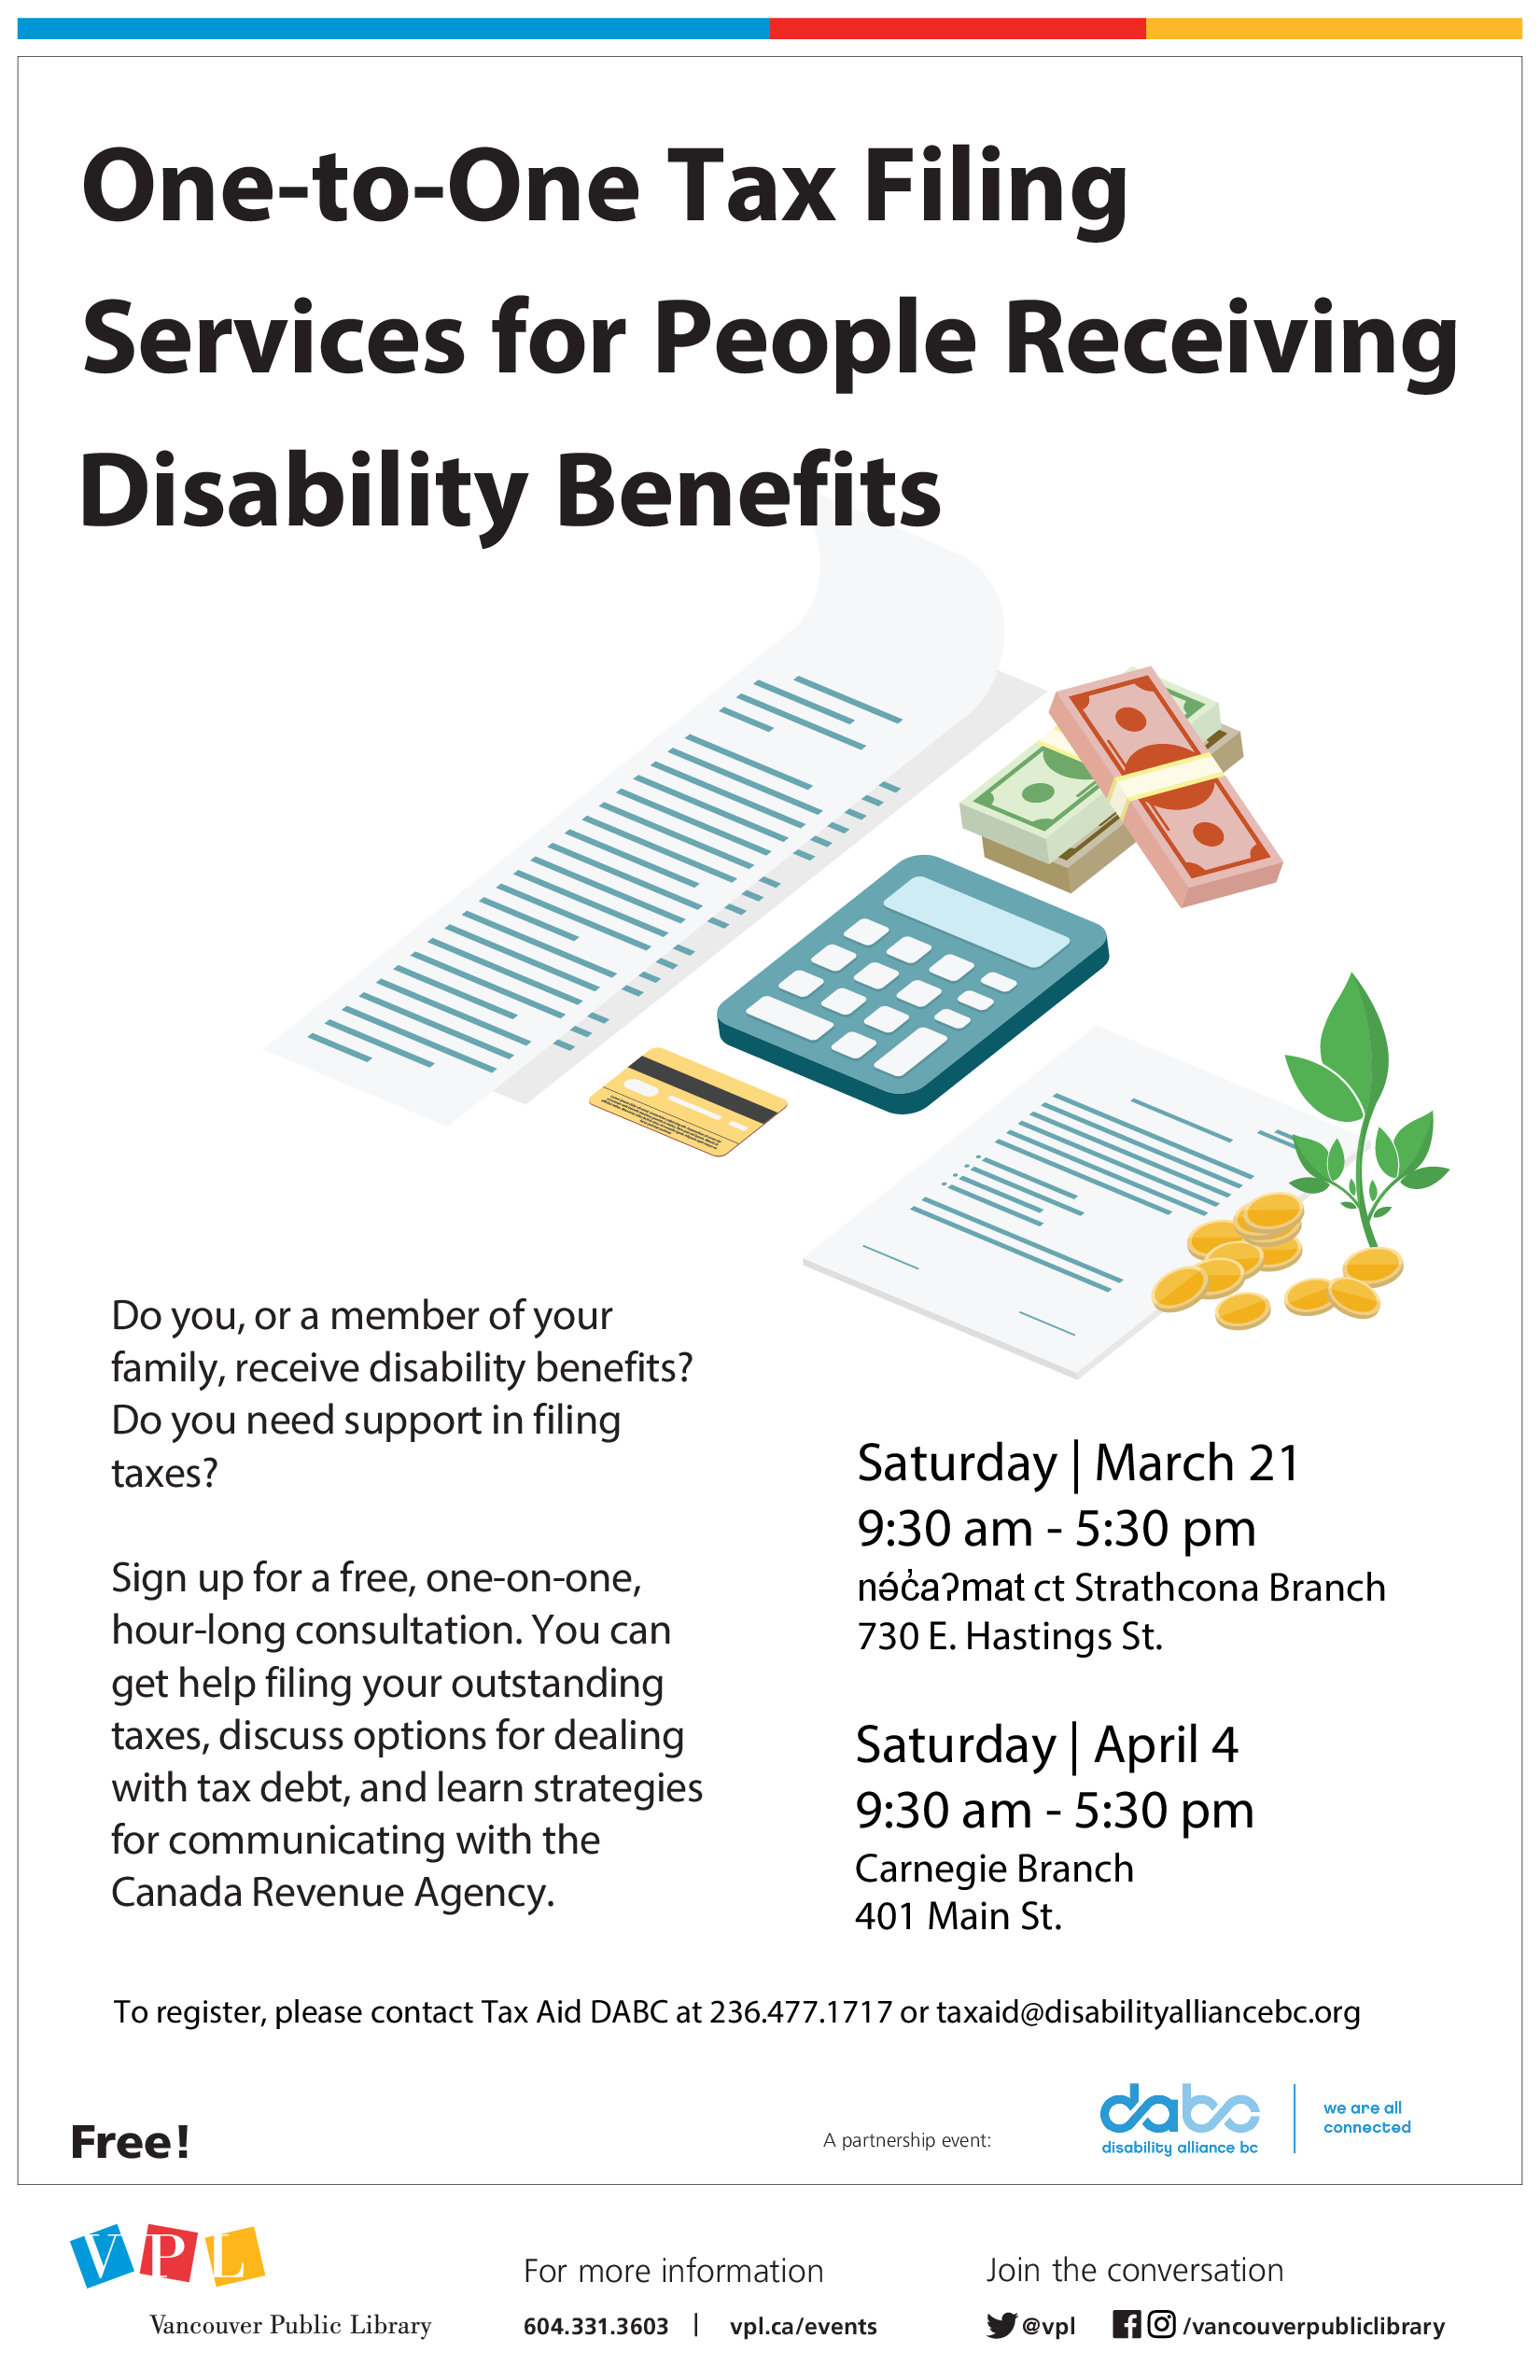 VPL - PLG - One-to-One Tax Filing Disability Benefits - Poster - 2020-03-21 - 2020-04-04(2)